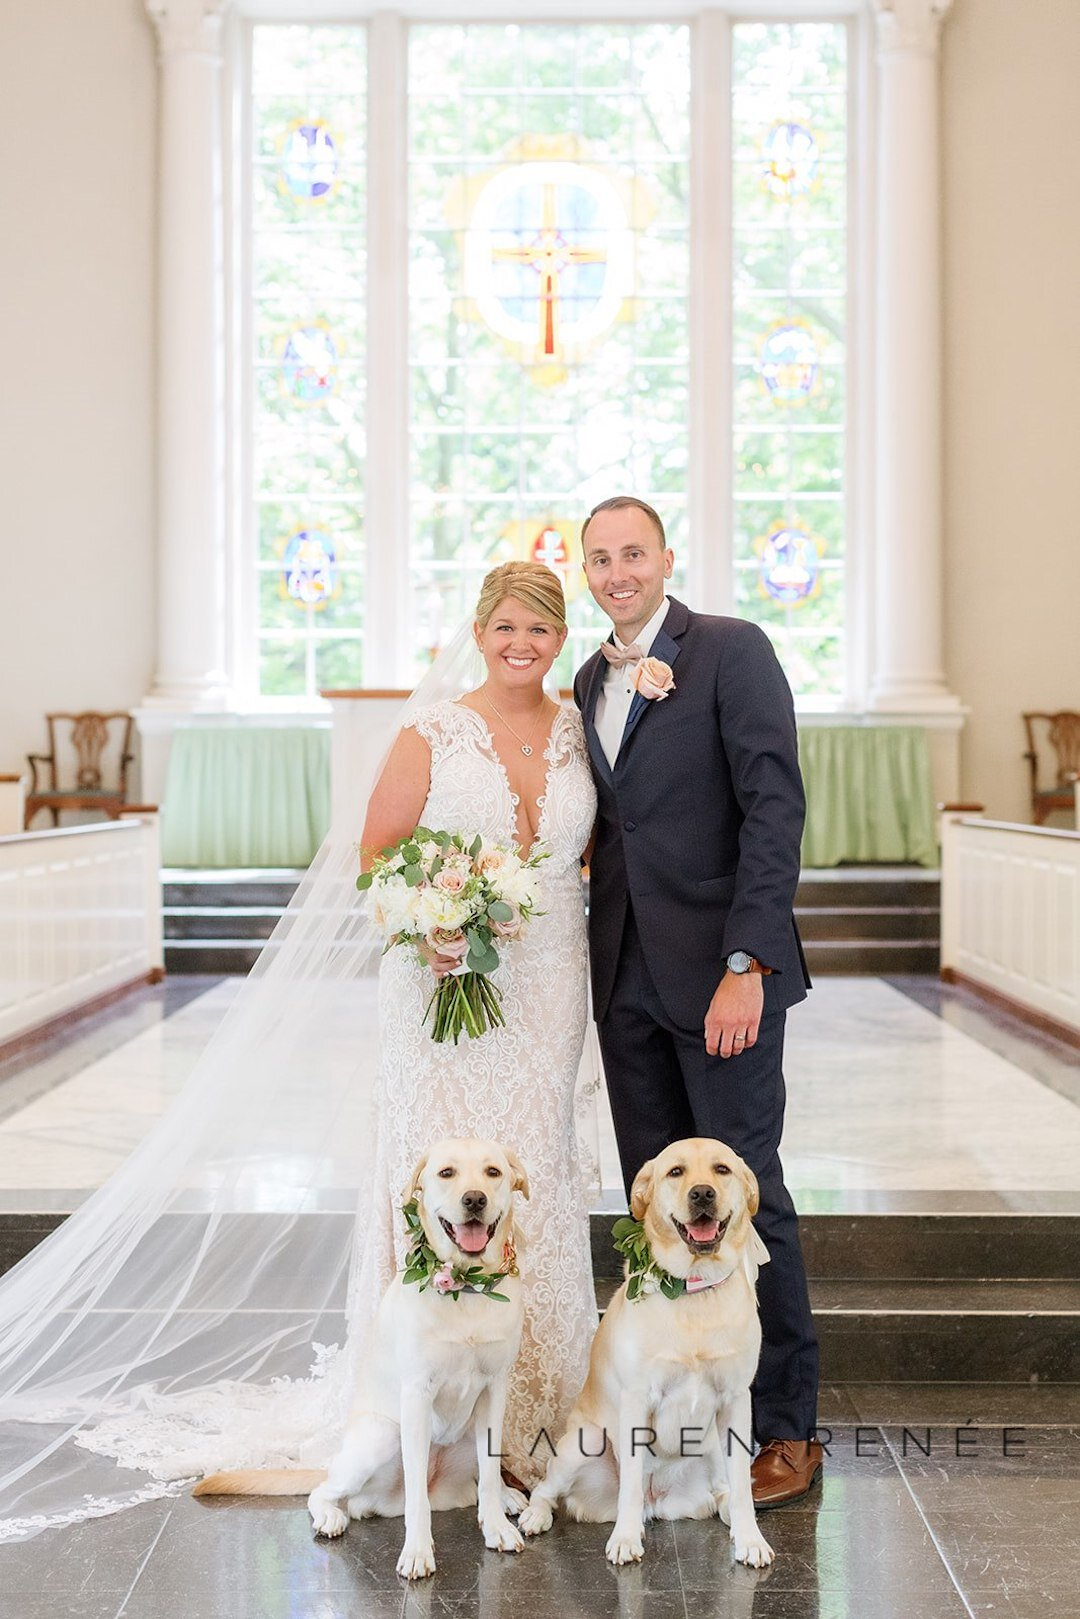 Wedding photo with bride, groom and dogs: Romantic Blush Wedding at the Pittsburgh Field Club planned by Exhale Events. See more at exhale-events.com!